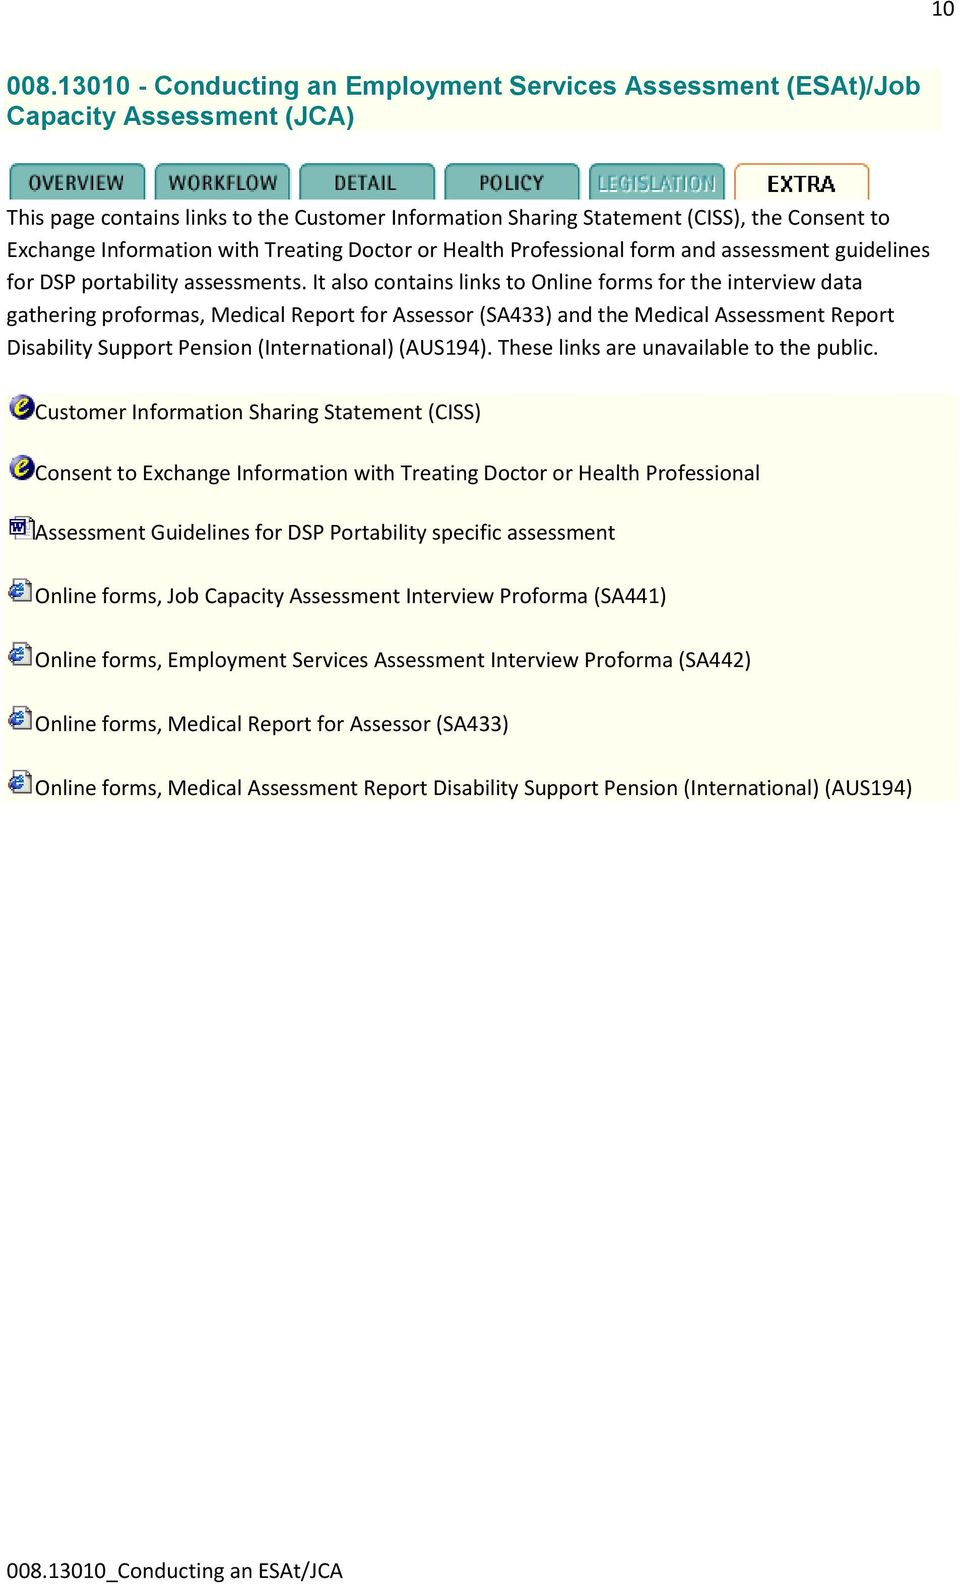 referral for an employment services assessment guidelines